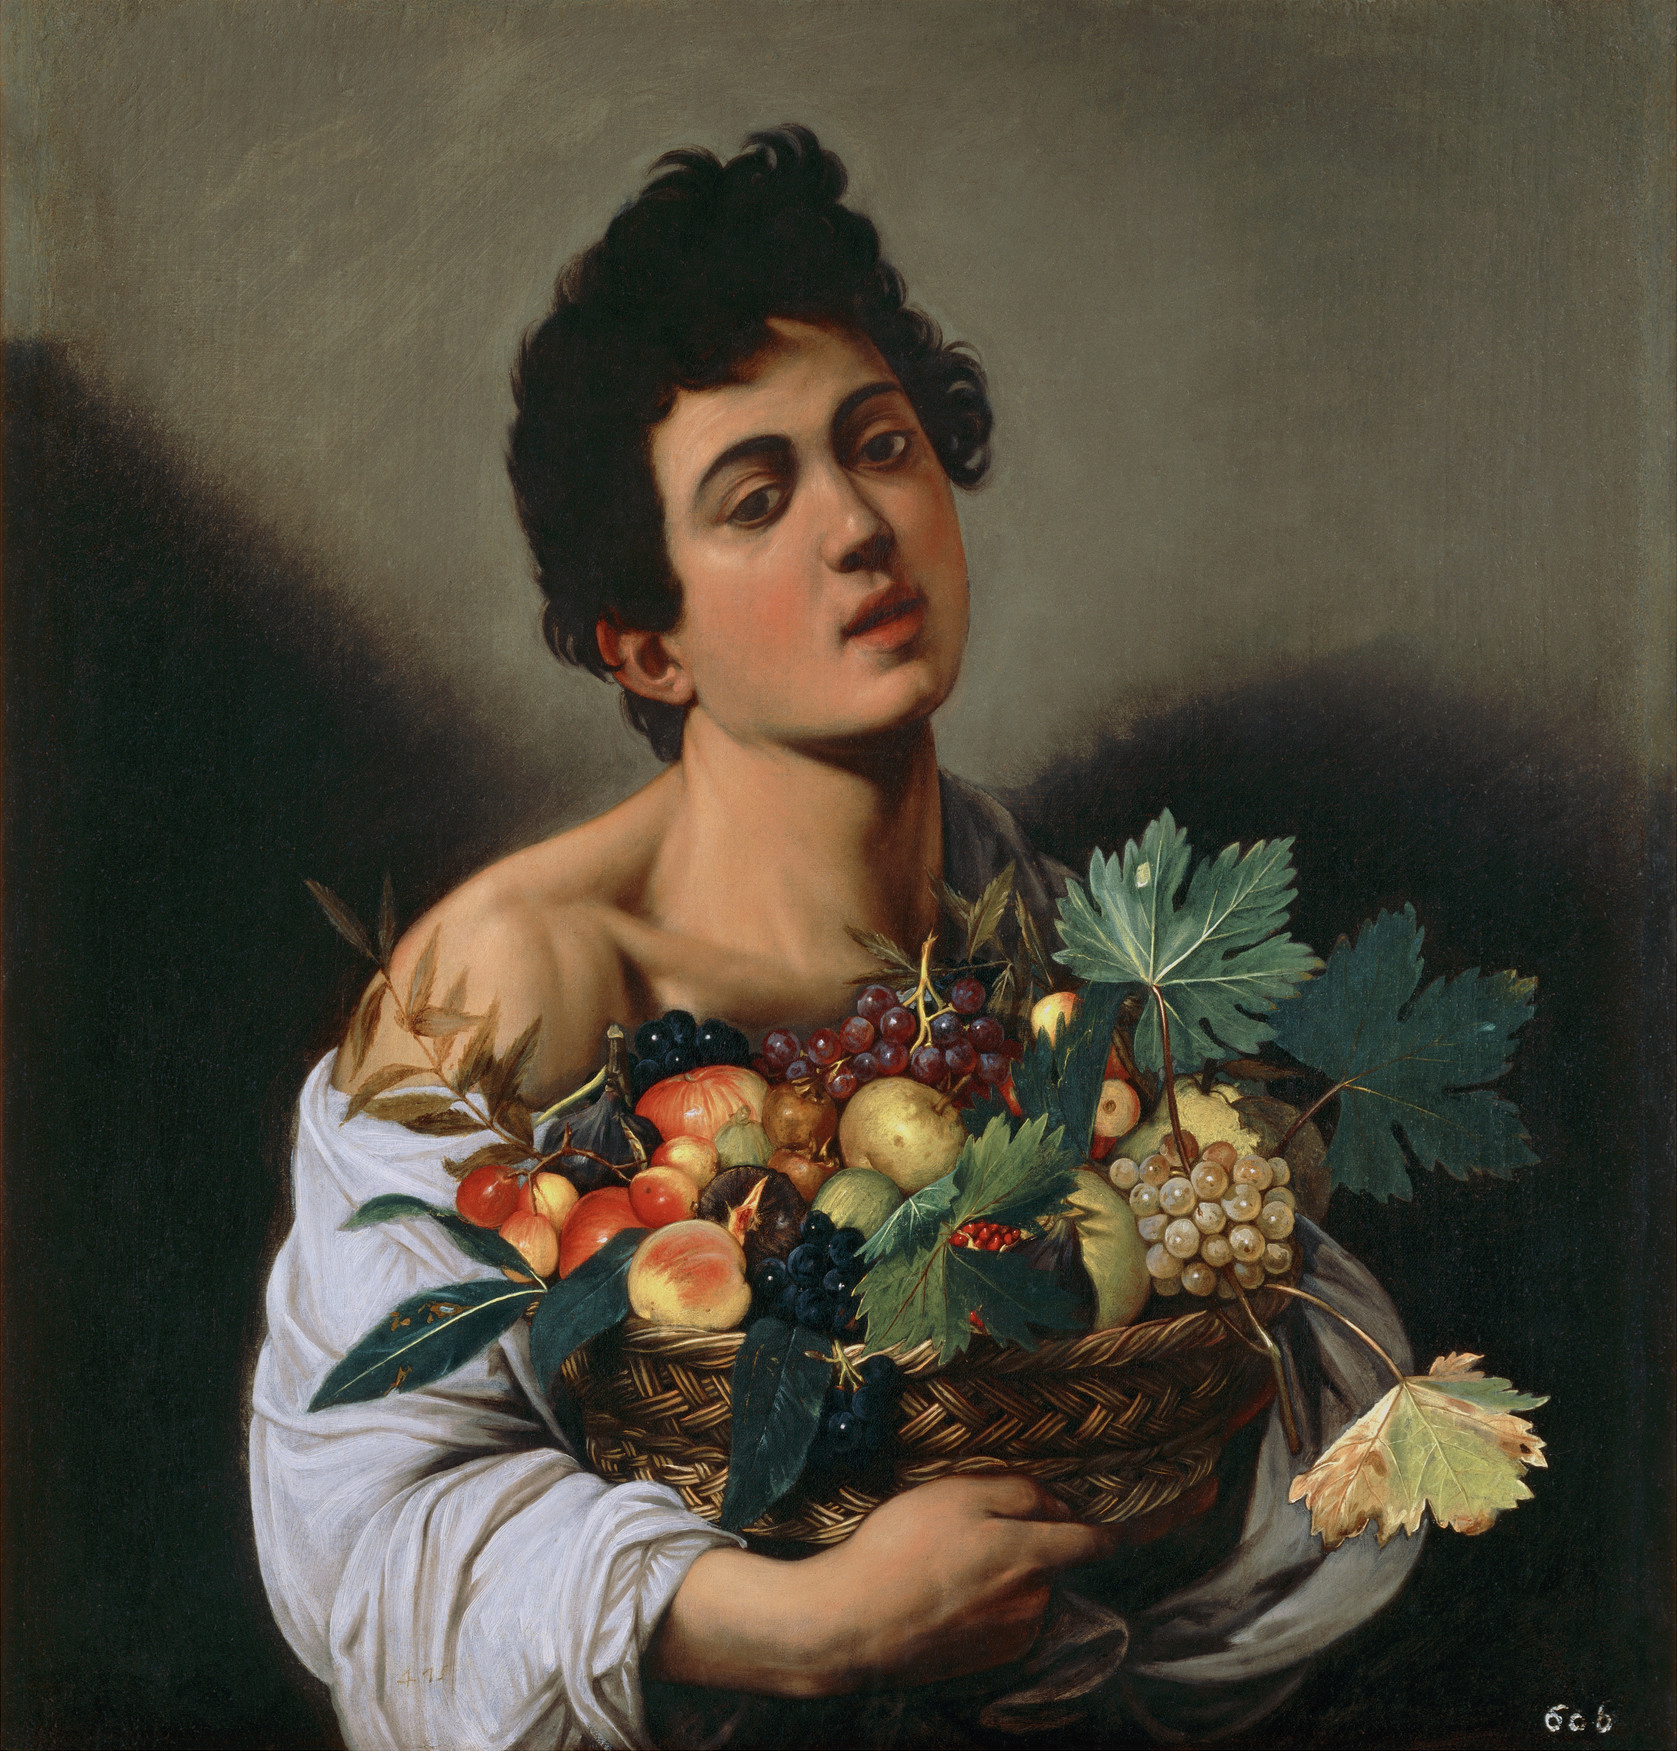 Boy with a Basket of Fruit, about 1593-94. Caravaggio (Italian, 1571-1610). Oil on canvas. Minister